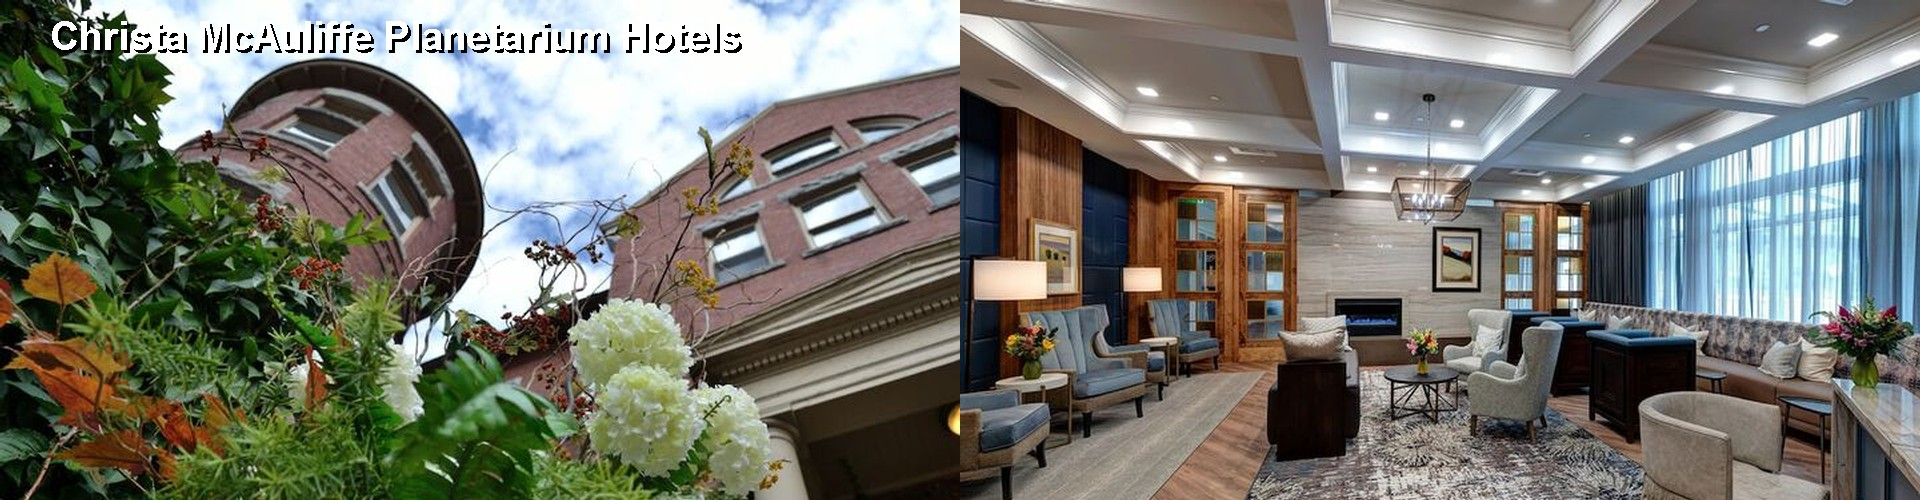 5 Best Hotels near Christa McAuliffe Planetarium